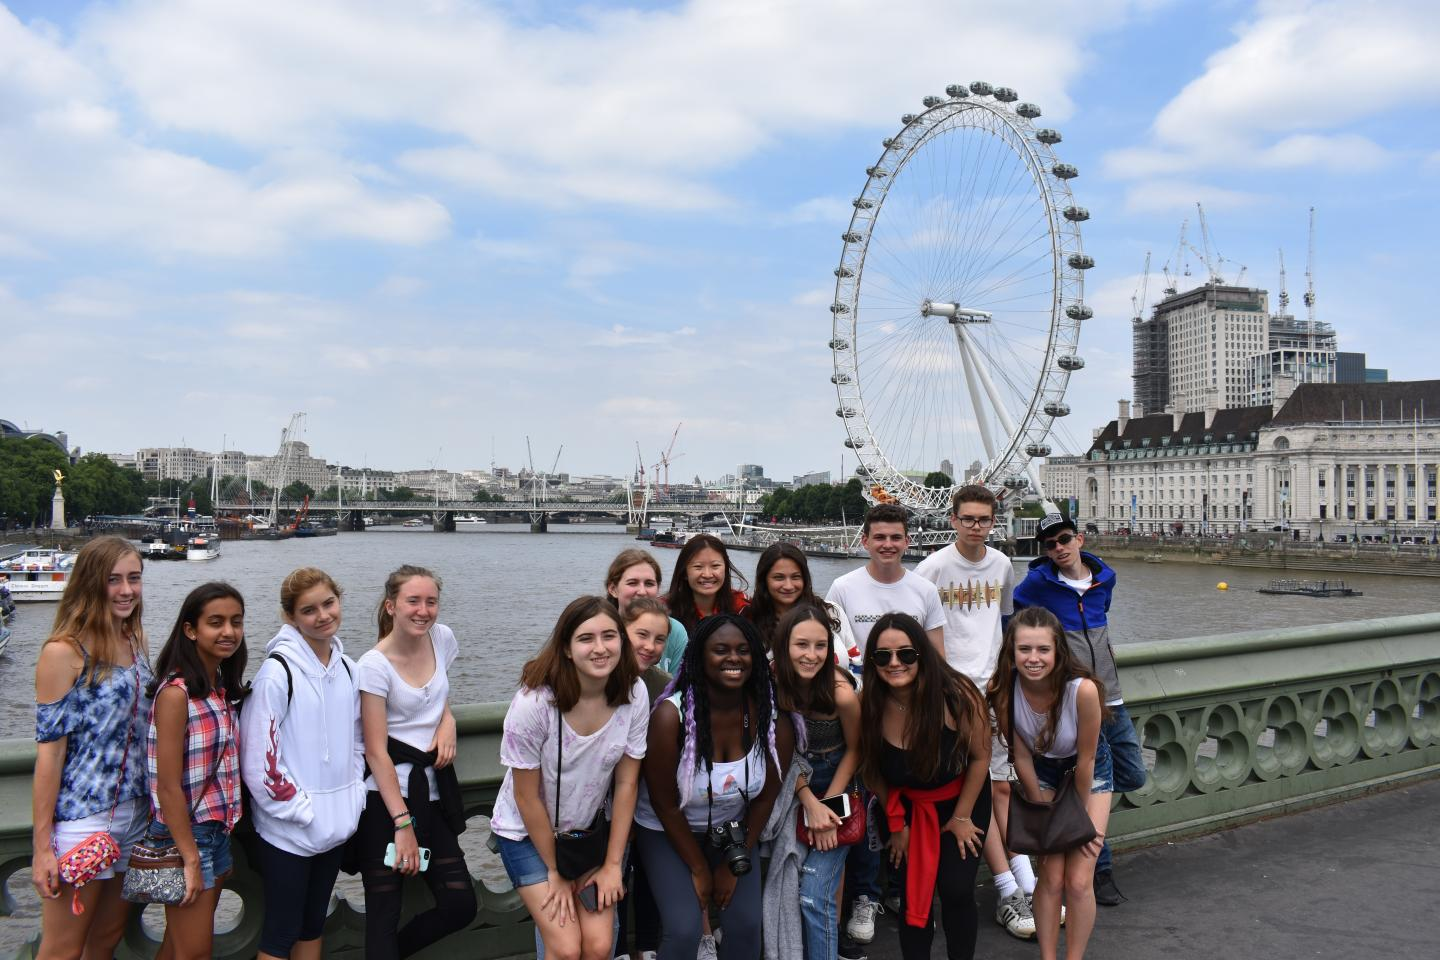 Happy teens at London Eye in England on summer youth travel trip